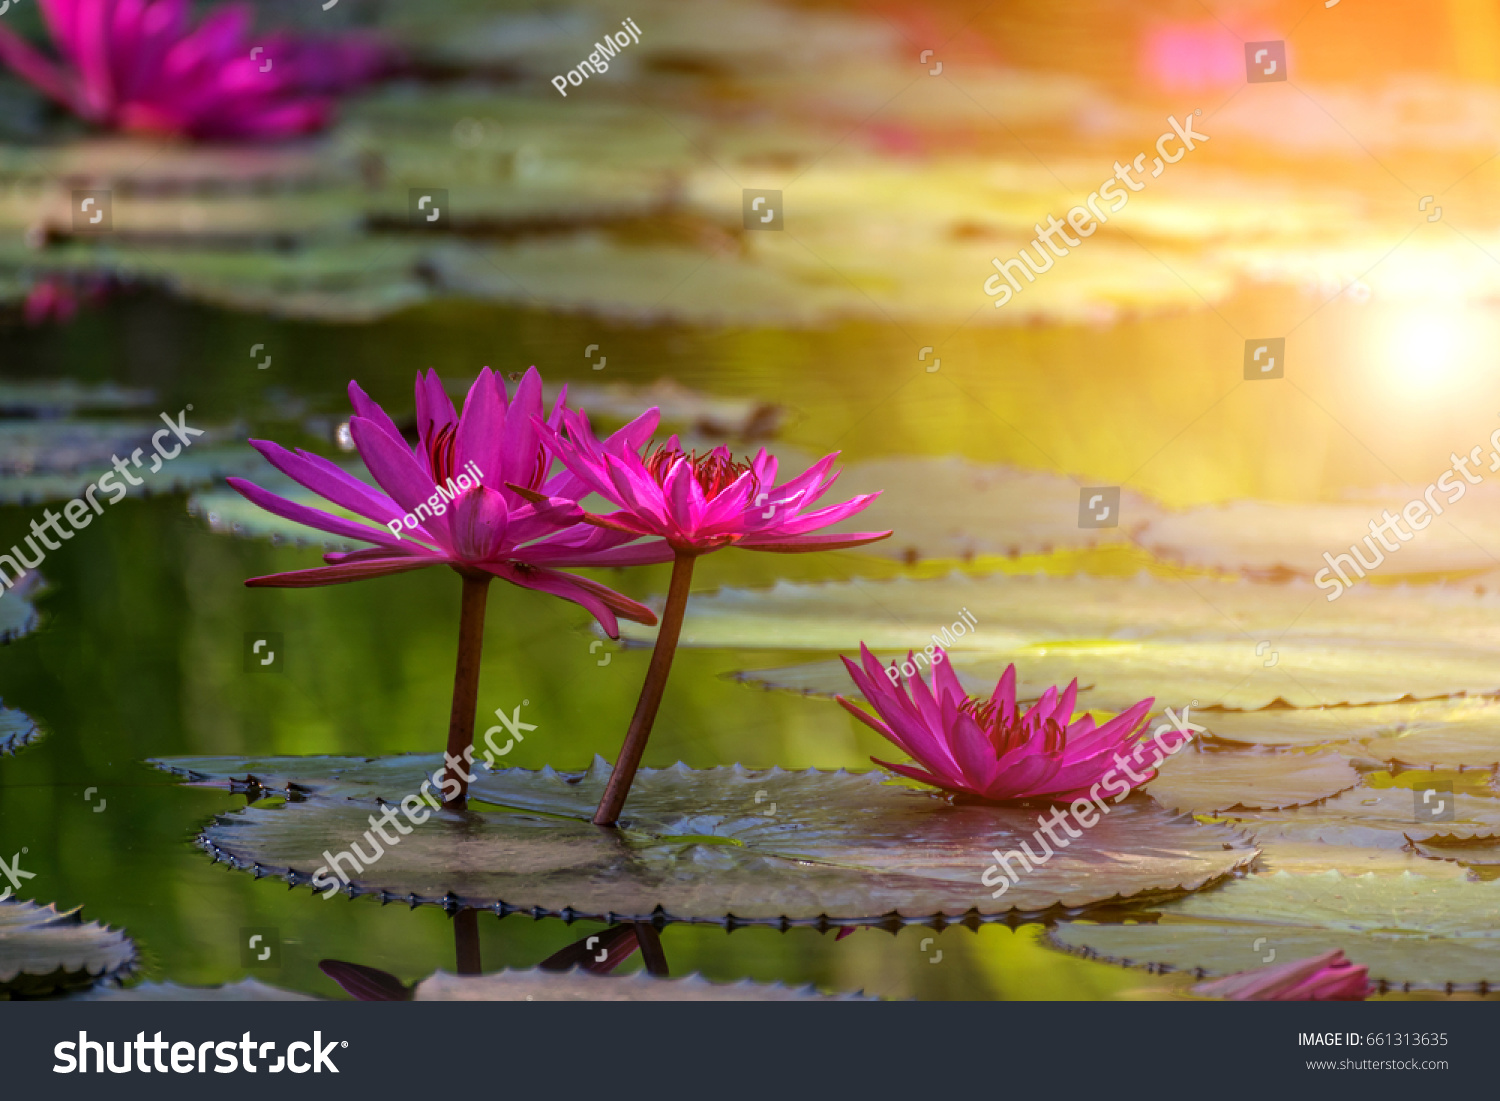 Lotus flower lotus nelumbo purple violet stock photo edit now lotus flower lotus or nelumbo purple violet and pink color naturally beautiful izmirmasajfo